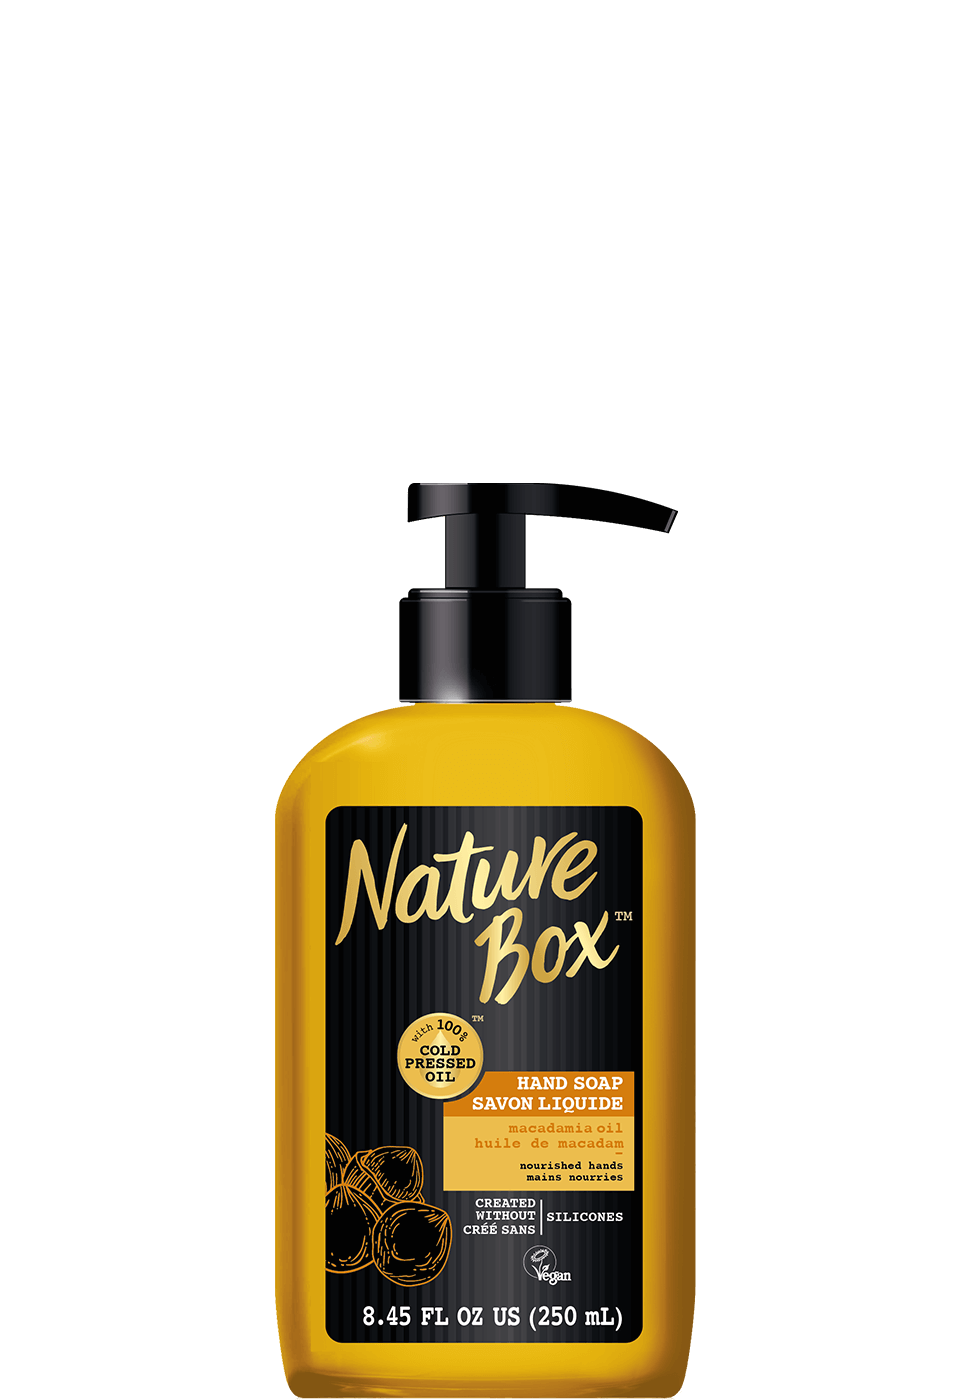 naturebox_us_macadamia_hand_soap_970x1400